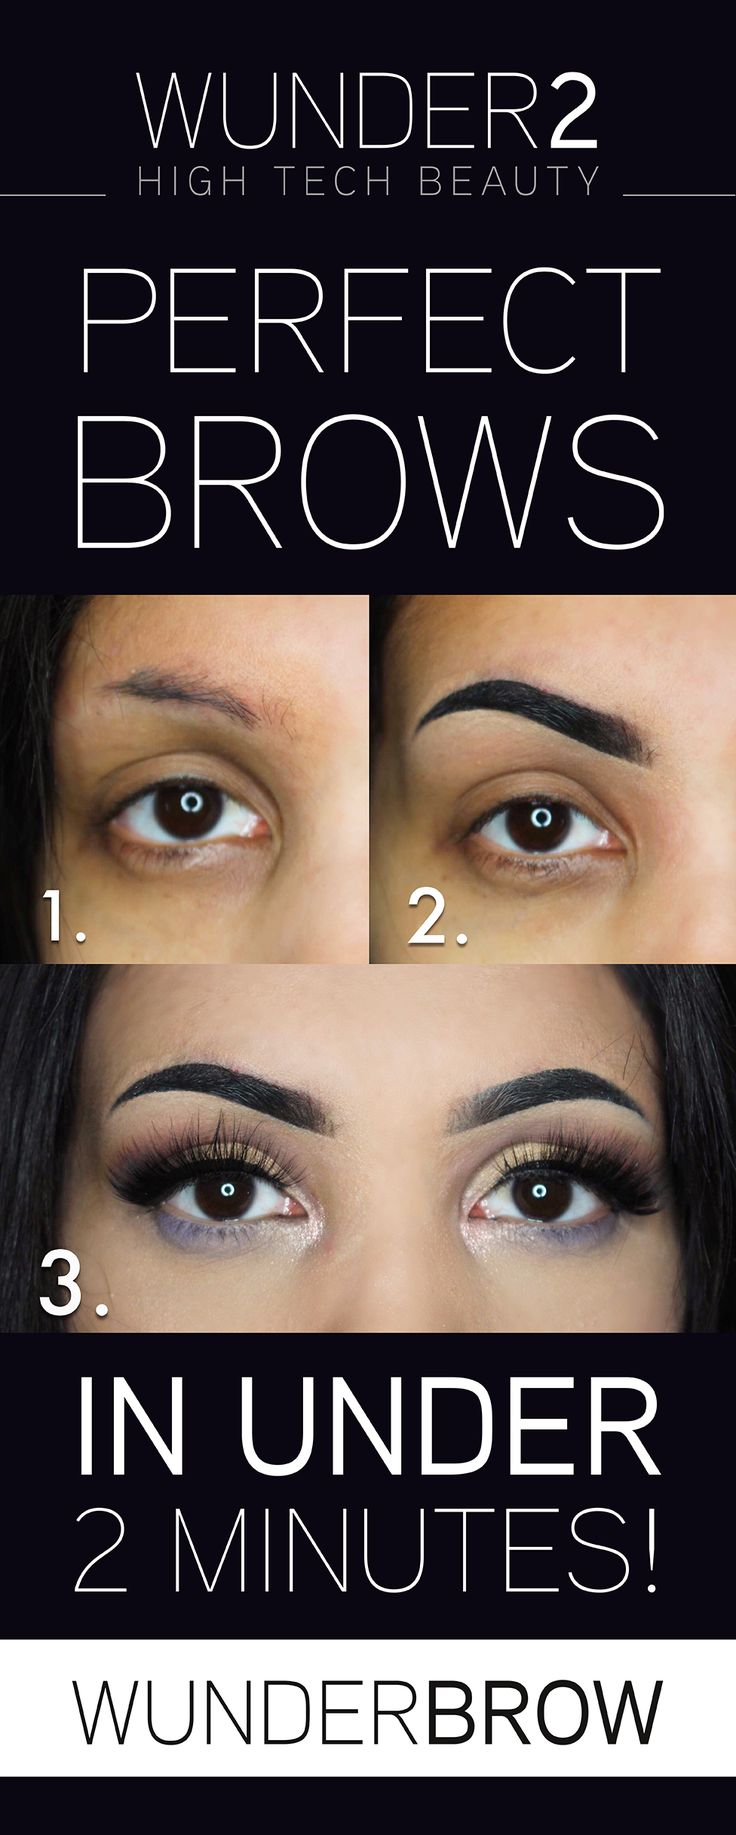 Eyebrows in under 2 minutes that will last up to 3 days without smudging or transferring! Simply apply using light, feather-like strokes to get the eyebrows you love! Why not try WunderBrow today for only $22 + FREE shipping & a 30 day risk-free money back guarantee. Simply click on the 'visit' button above. The order form takes less than 2 minutes to complete. Once done you will receive an order confirmation email. You will never want to try another eyebrow product once you've tried…